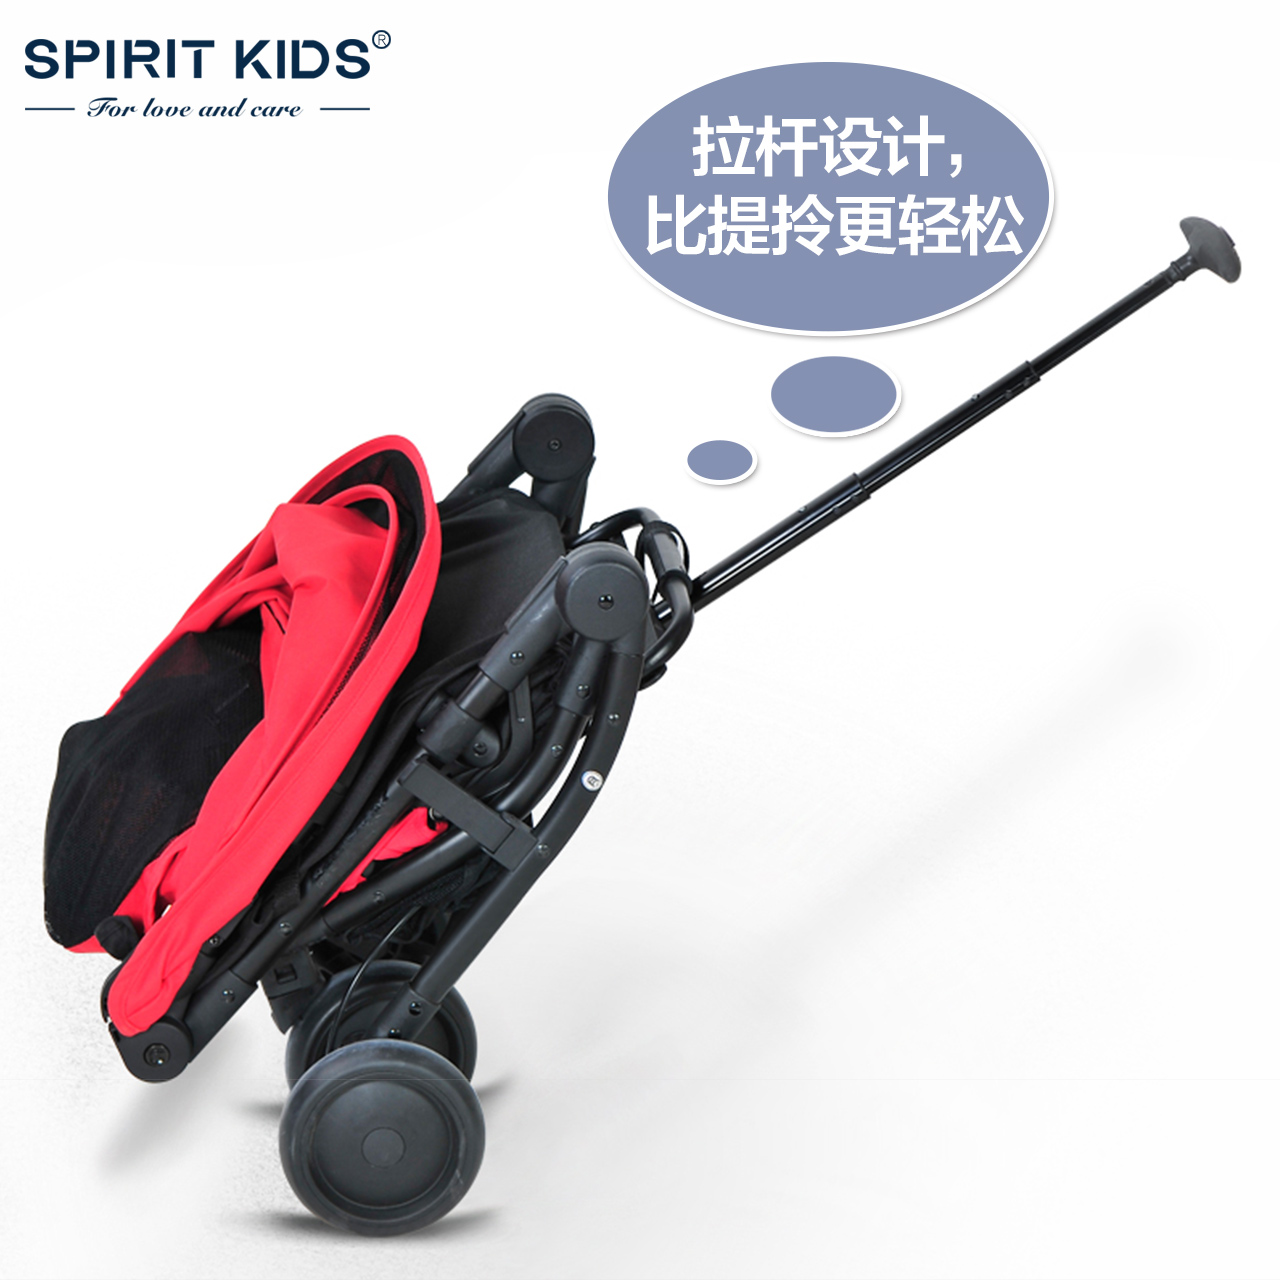 Smart Light Children Umbrella Cart, Portable Baby Travel Car, Folding Baby Stroller Baby Trolley design, 4 Wheel, Can Sit & Lie car trunk storage box folding suitcase with wheel portable new top quality travel trolley carts 3 colors daily usage